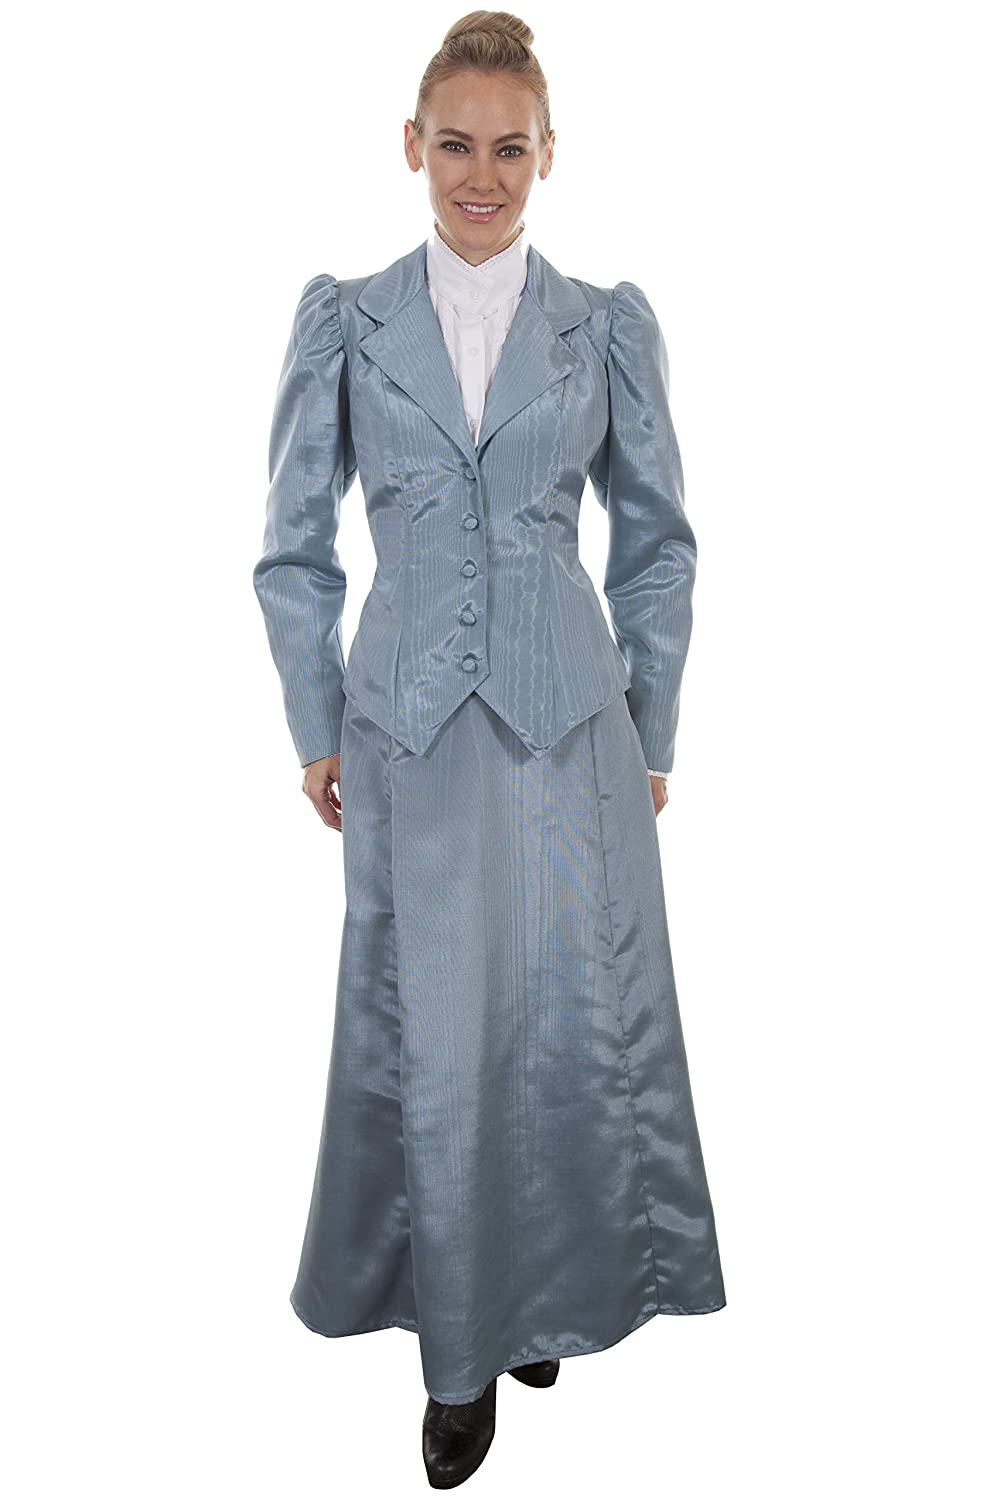 1890s-1900s Fashion, Clothing, Costumes Scully Wahmaker Womens Vintage Five Gore Walking Skirt - 738816-Cho $64.55 AT vintagedancer.com